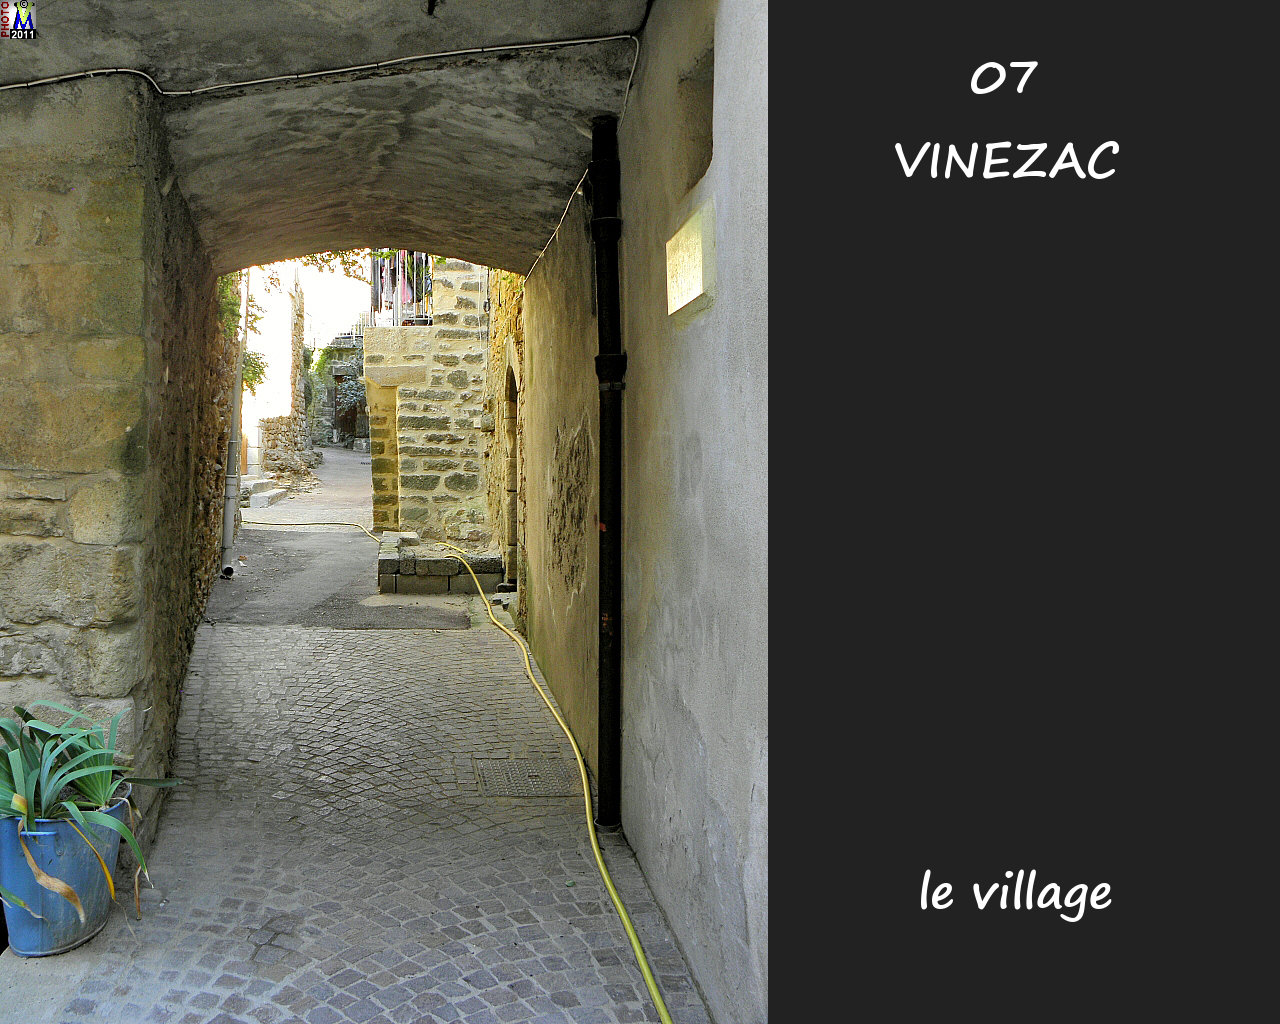 07VINEZAC_village_144.jpg